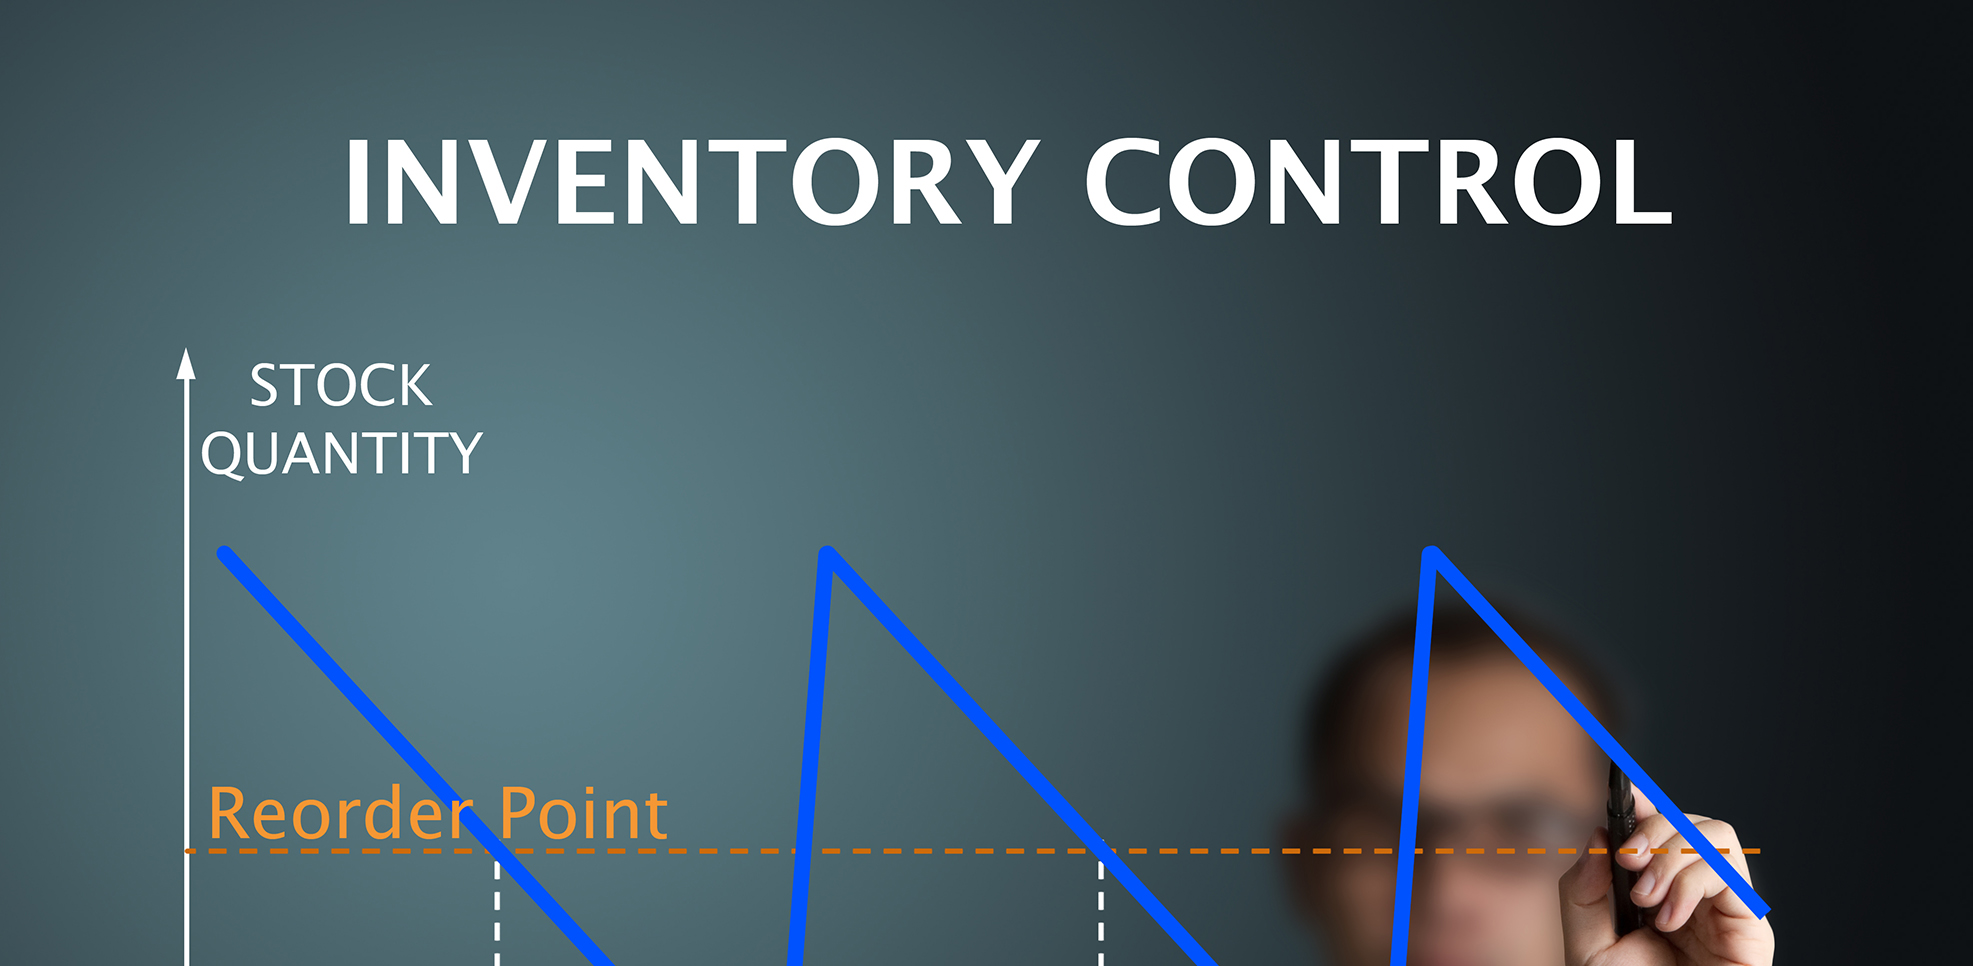 Inventory control feature image